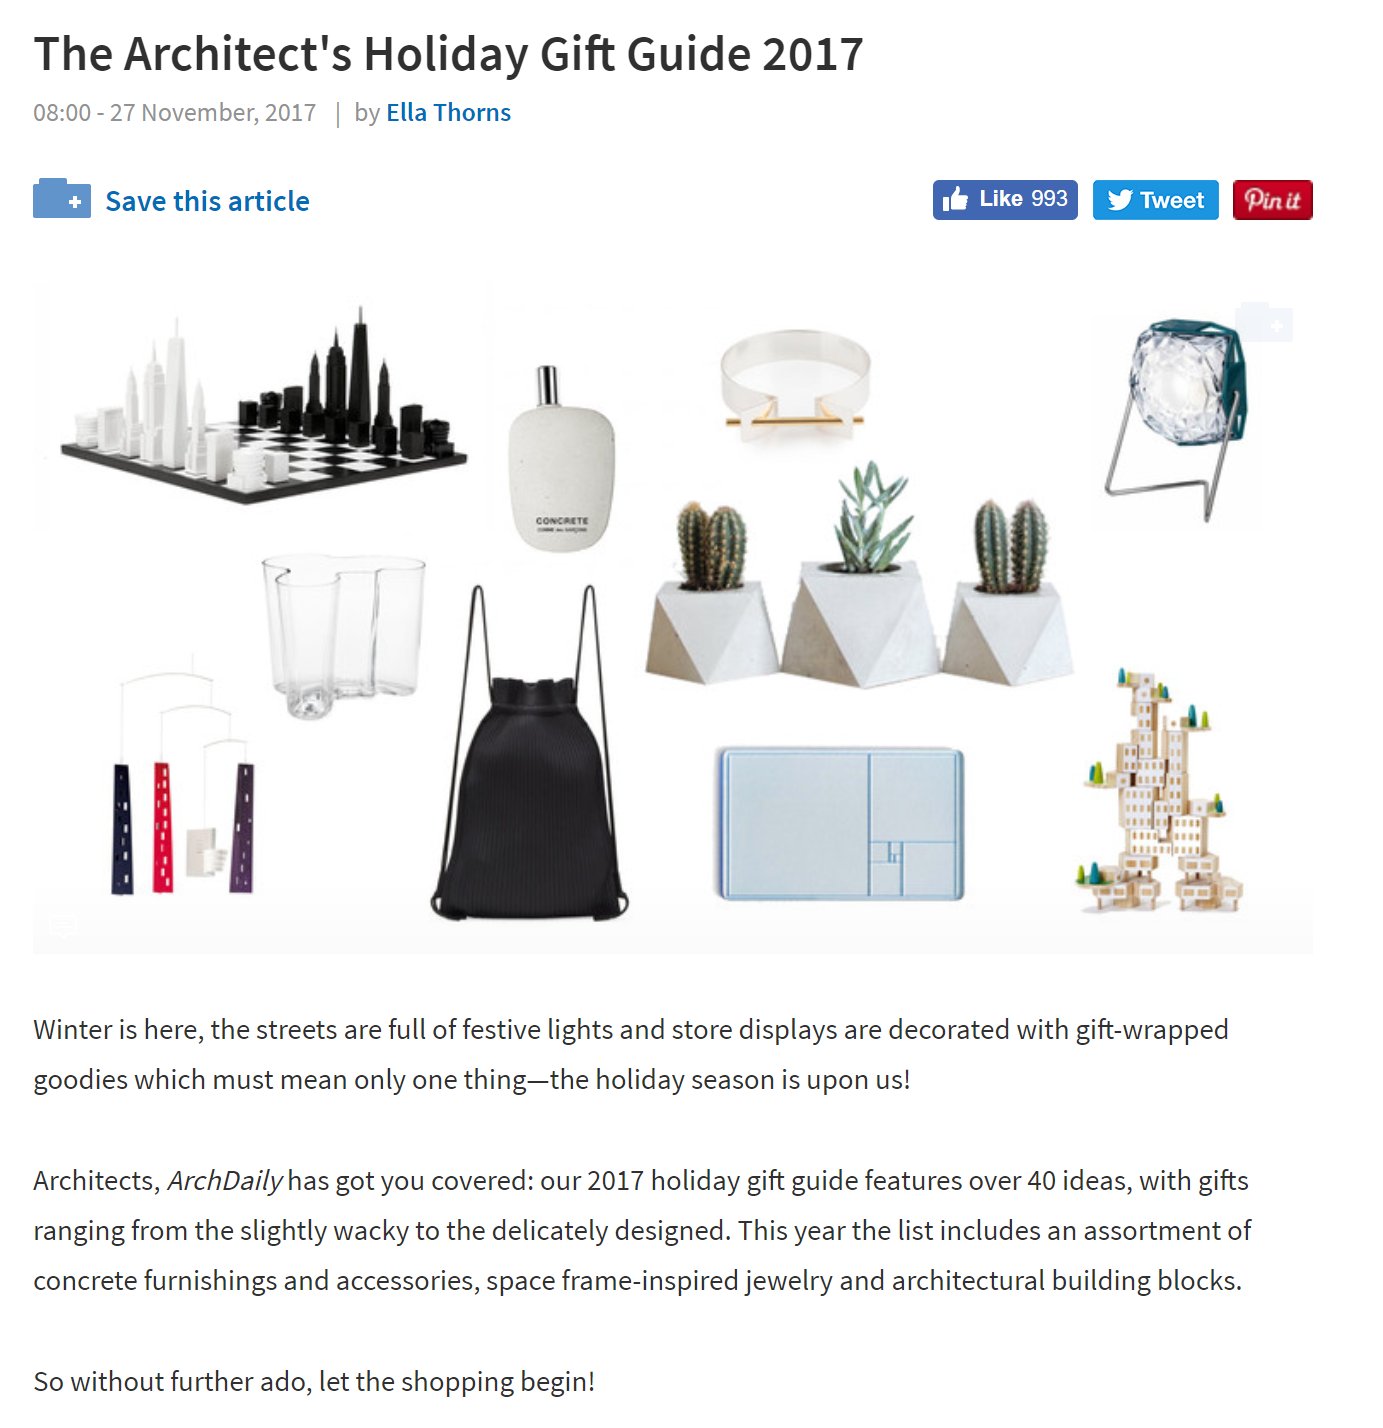 ArchdailyGiftGuide2017.PNG